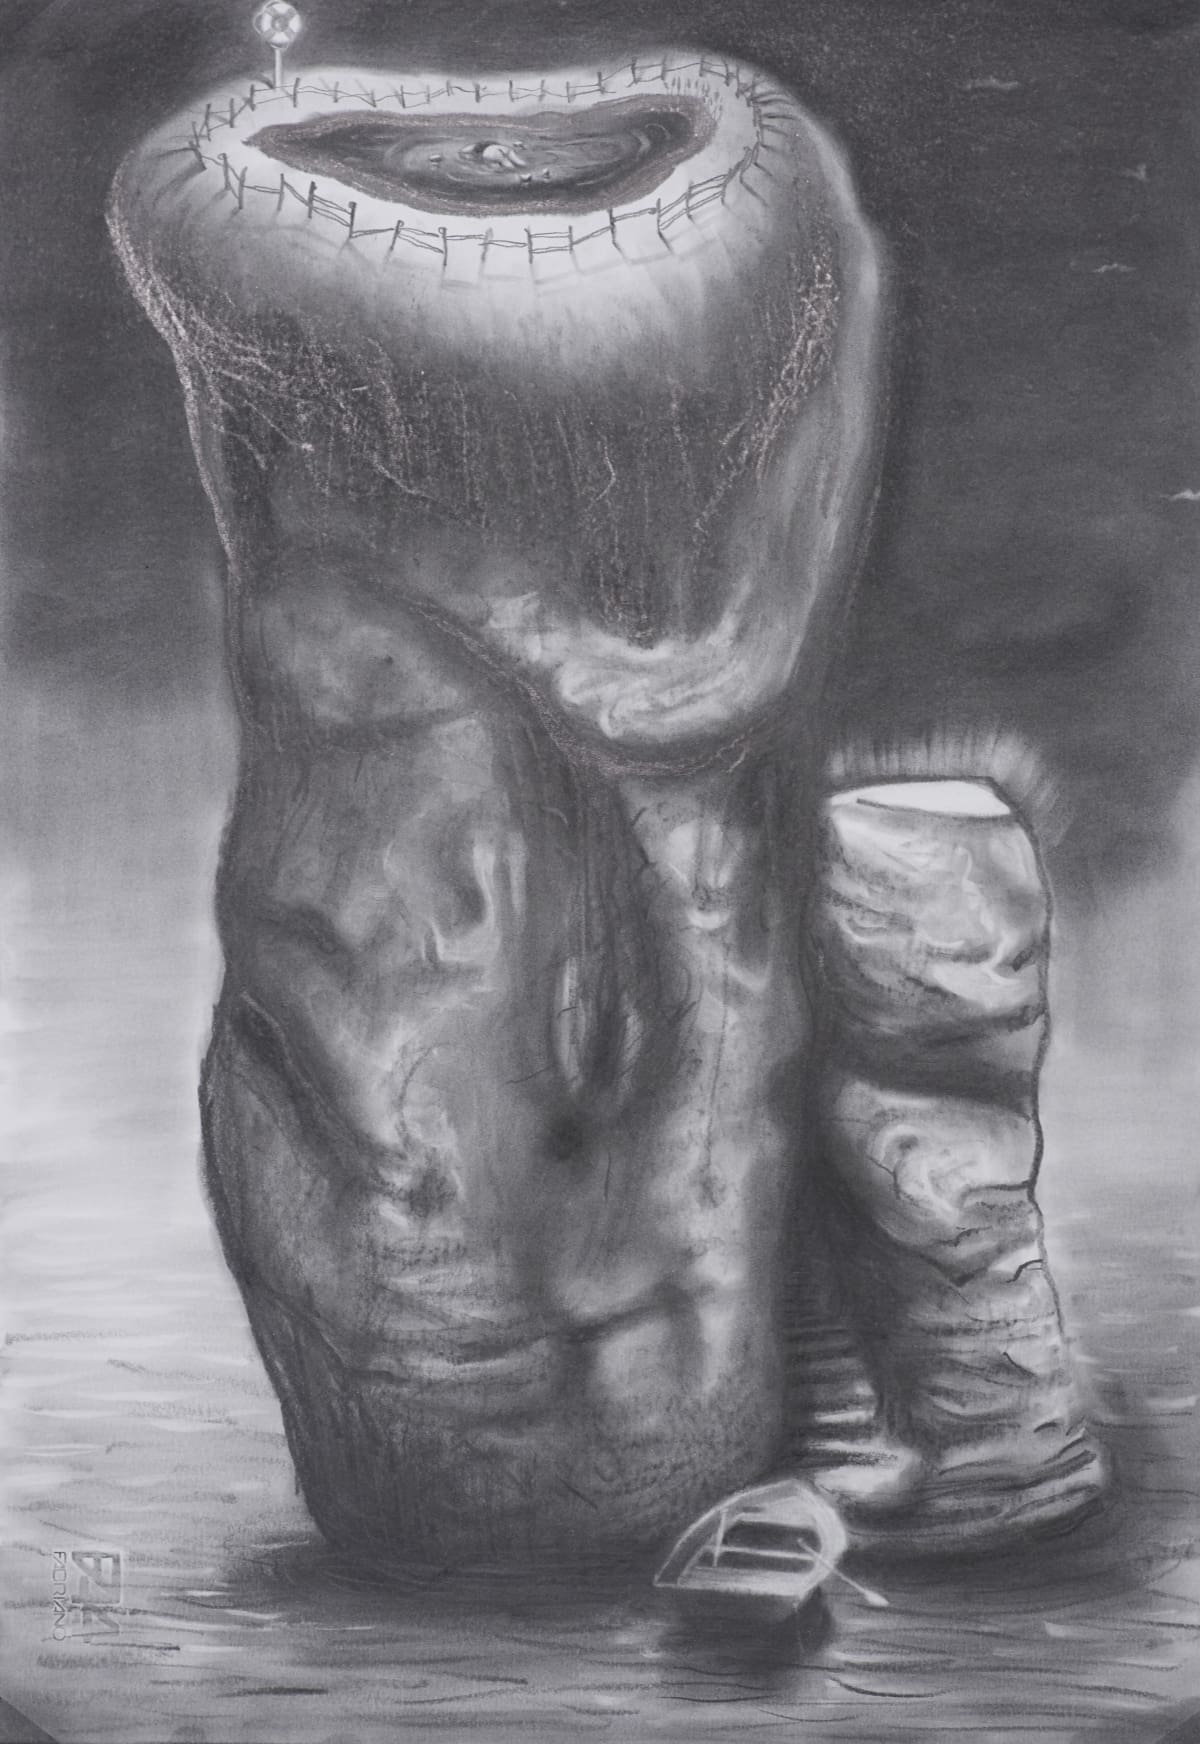 Robert McNally  Drowned in loneliness, 2010 - 2013  Graphite on paper  48 x 33 cm  18 7/8 x 13 in